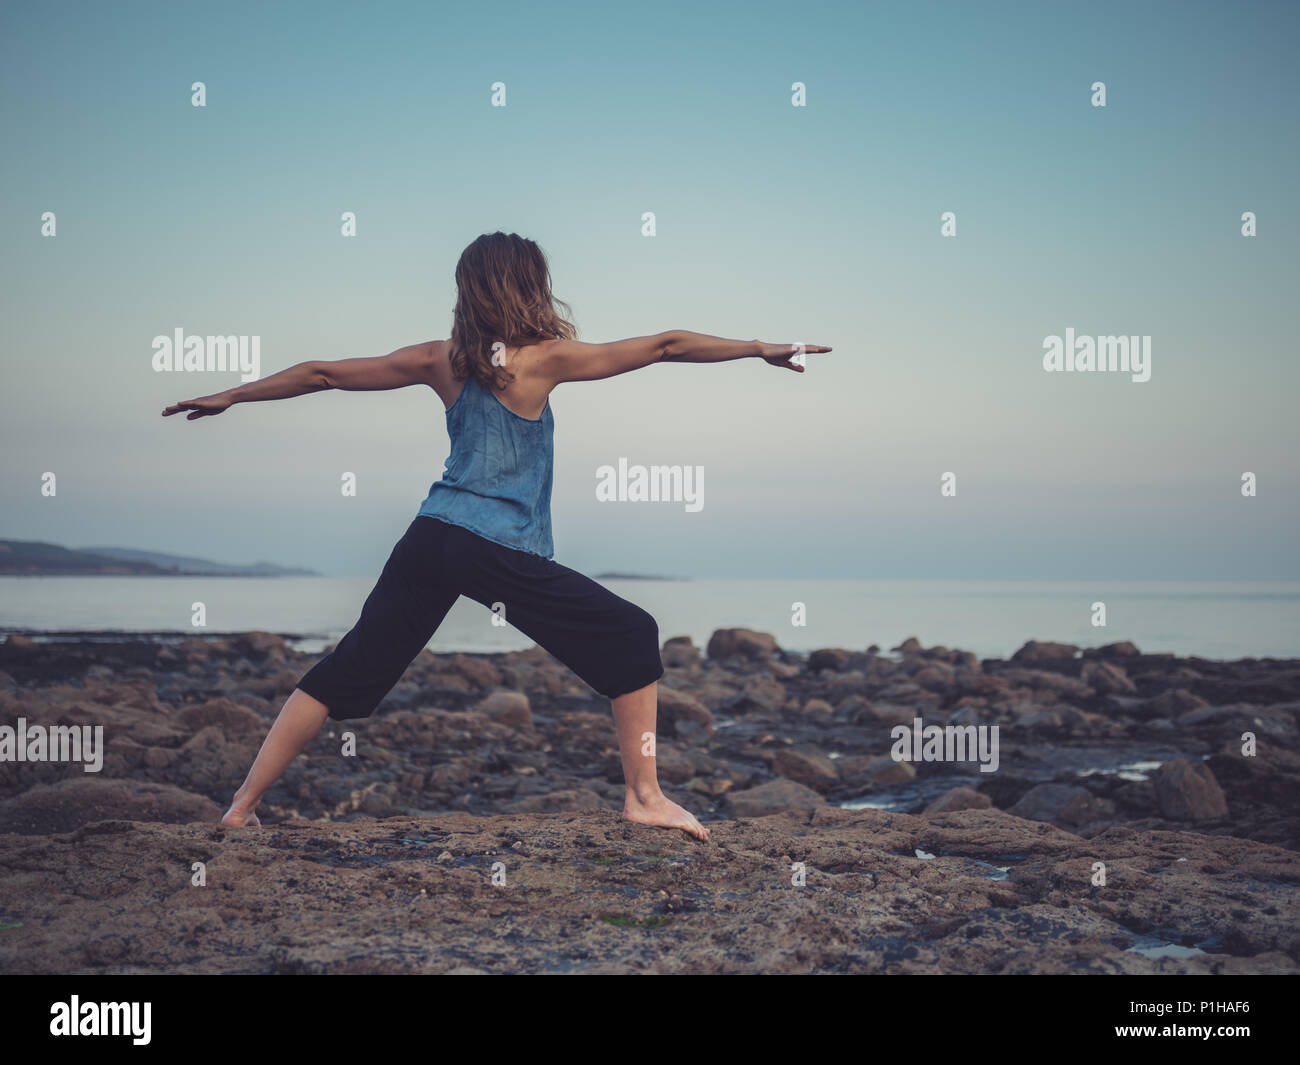 A young woman is doing yoga on the coast at sunset and is standing in a warrior pose - Stock Image